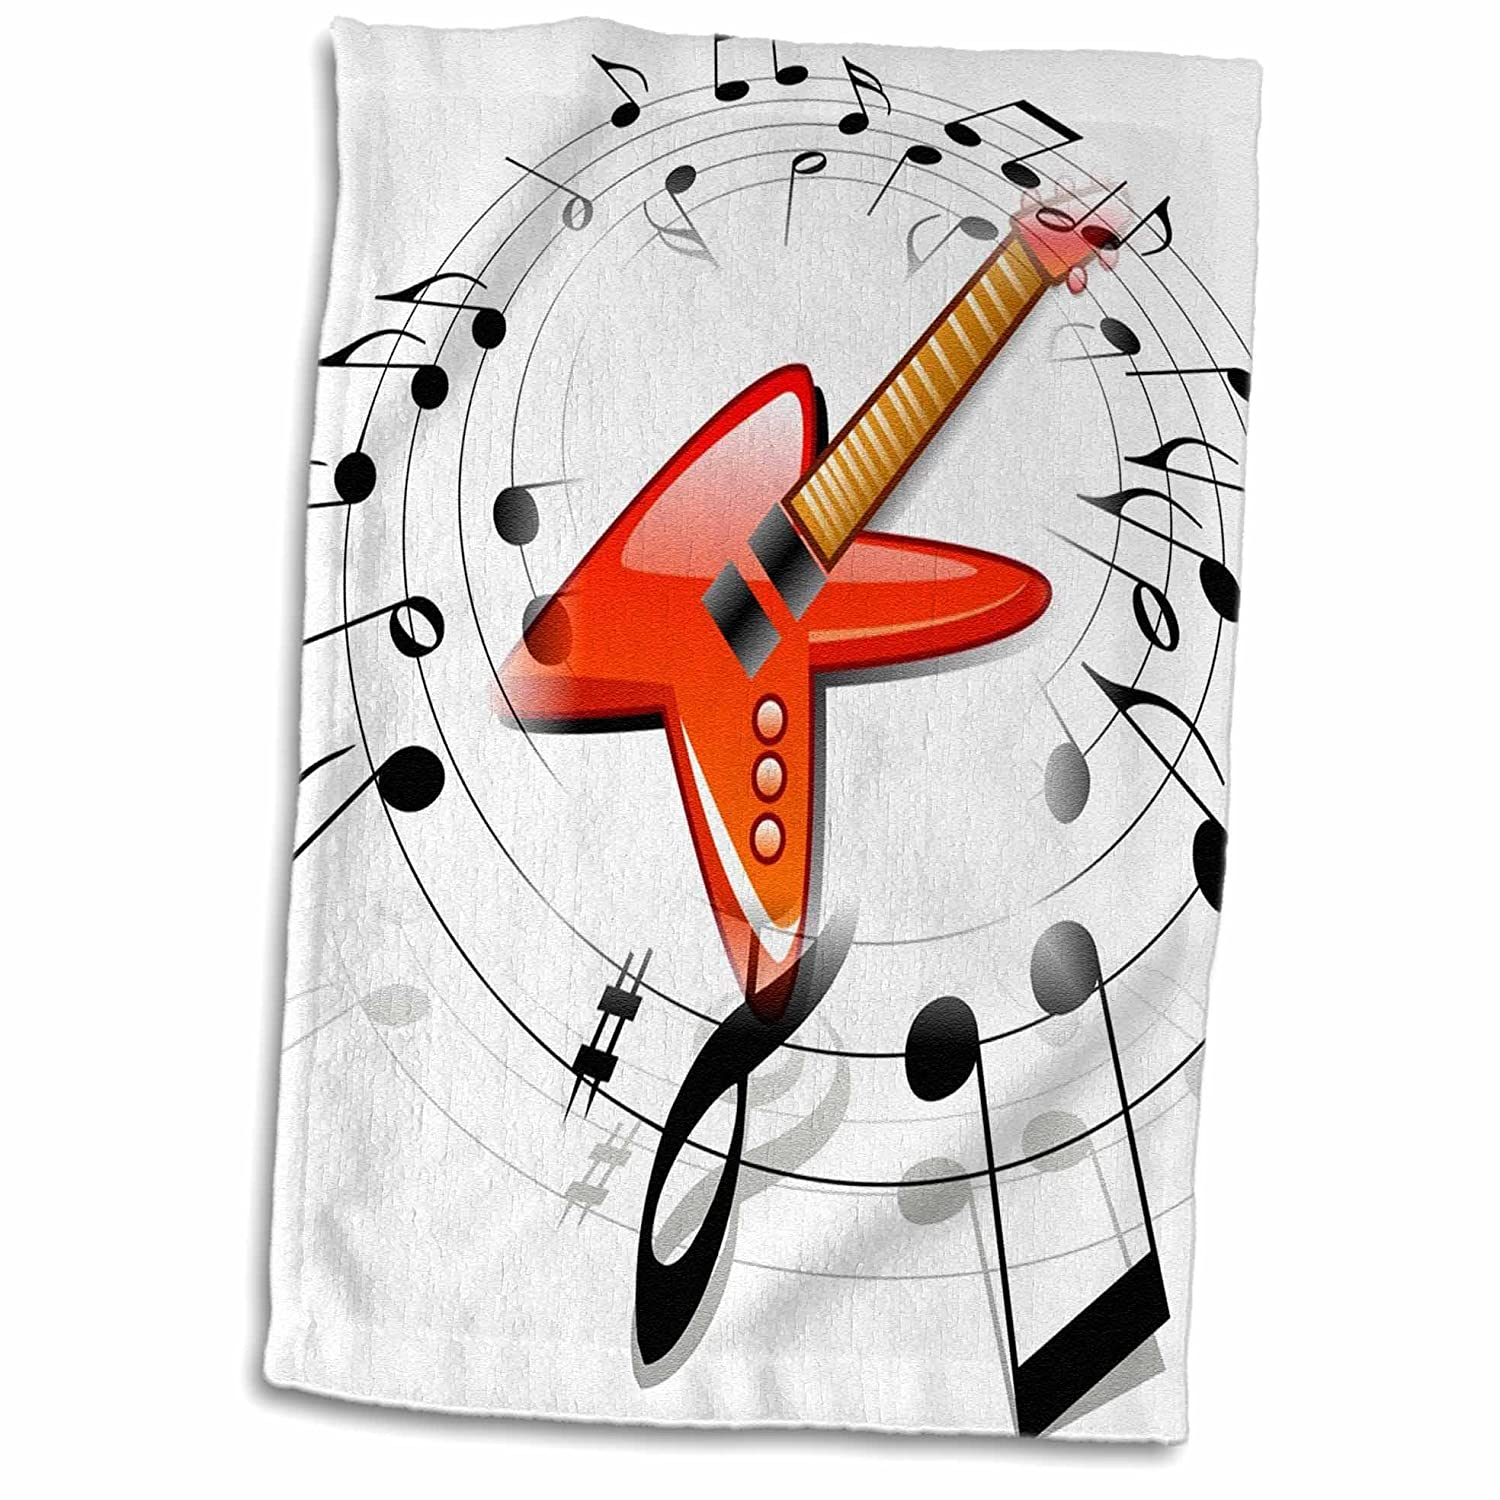 3D Rose Image of Red Guitar with Black Circling Notes Hand Towel 15' x 22'